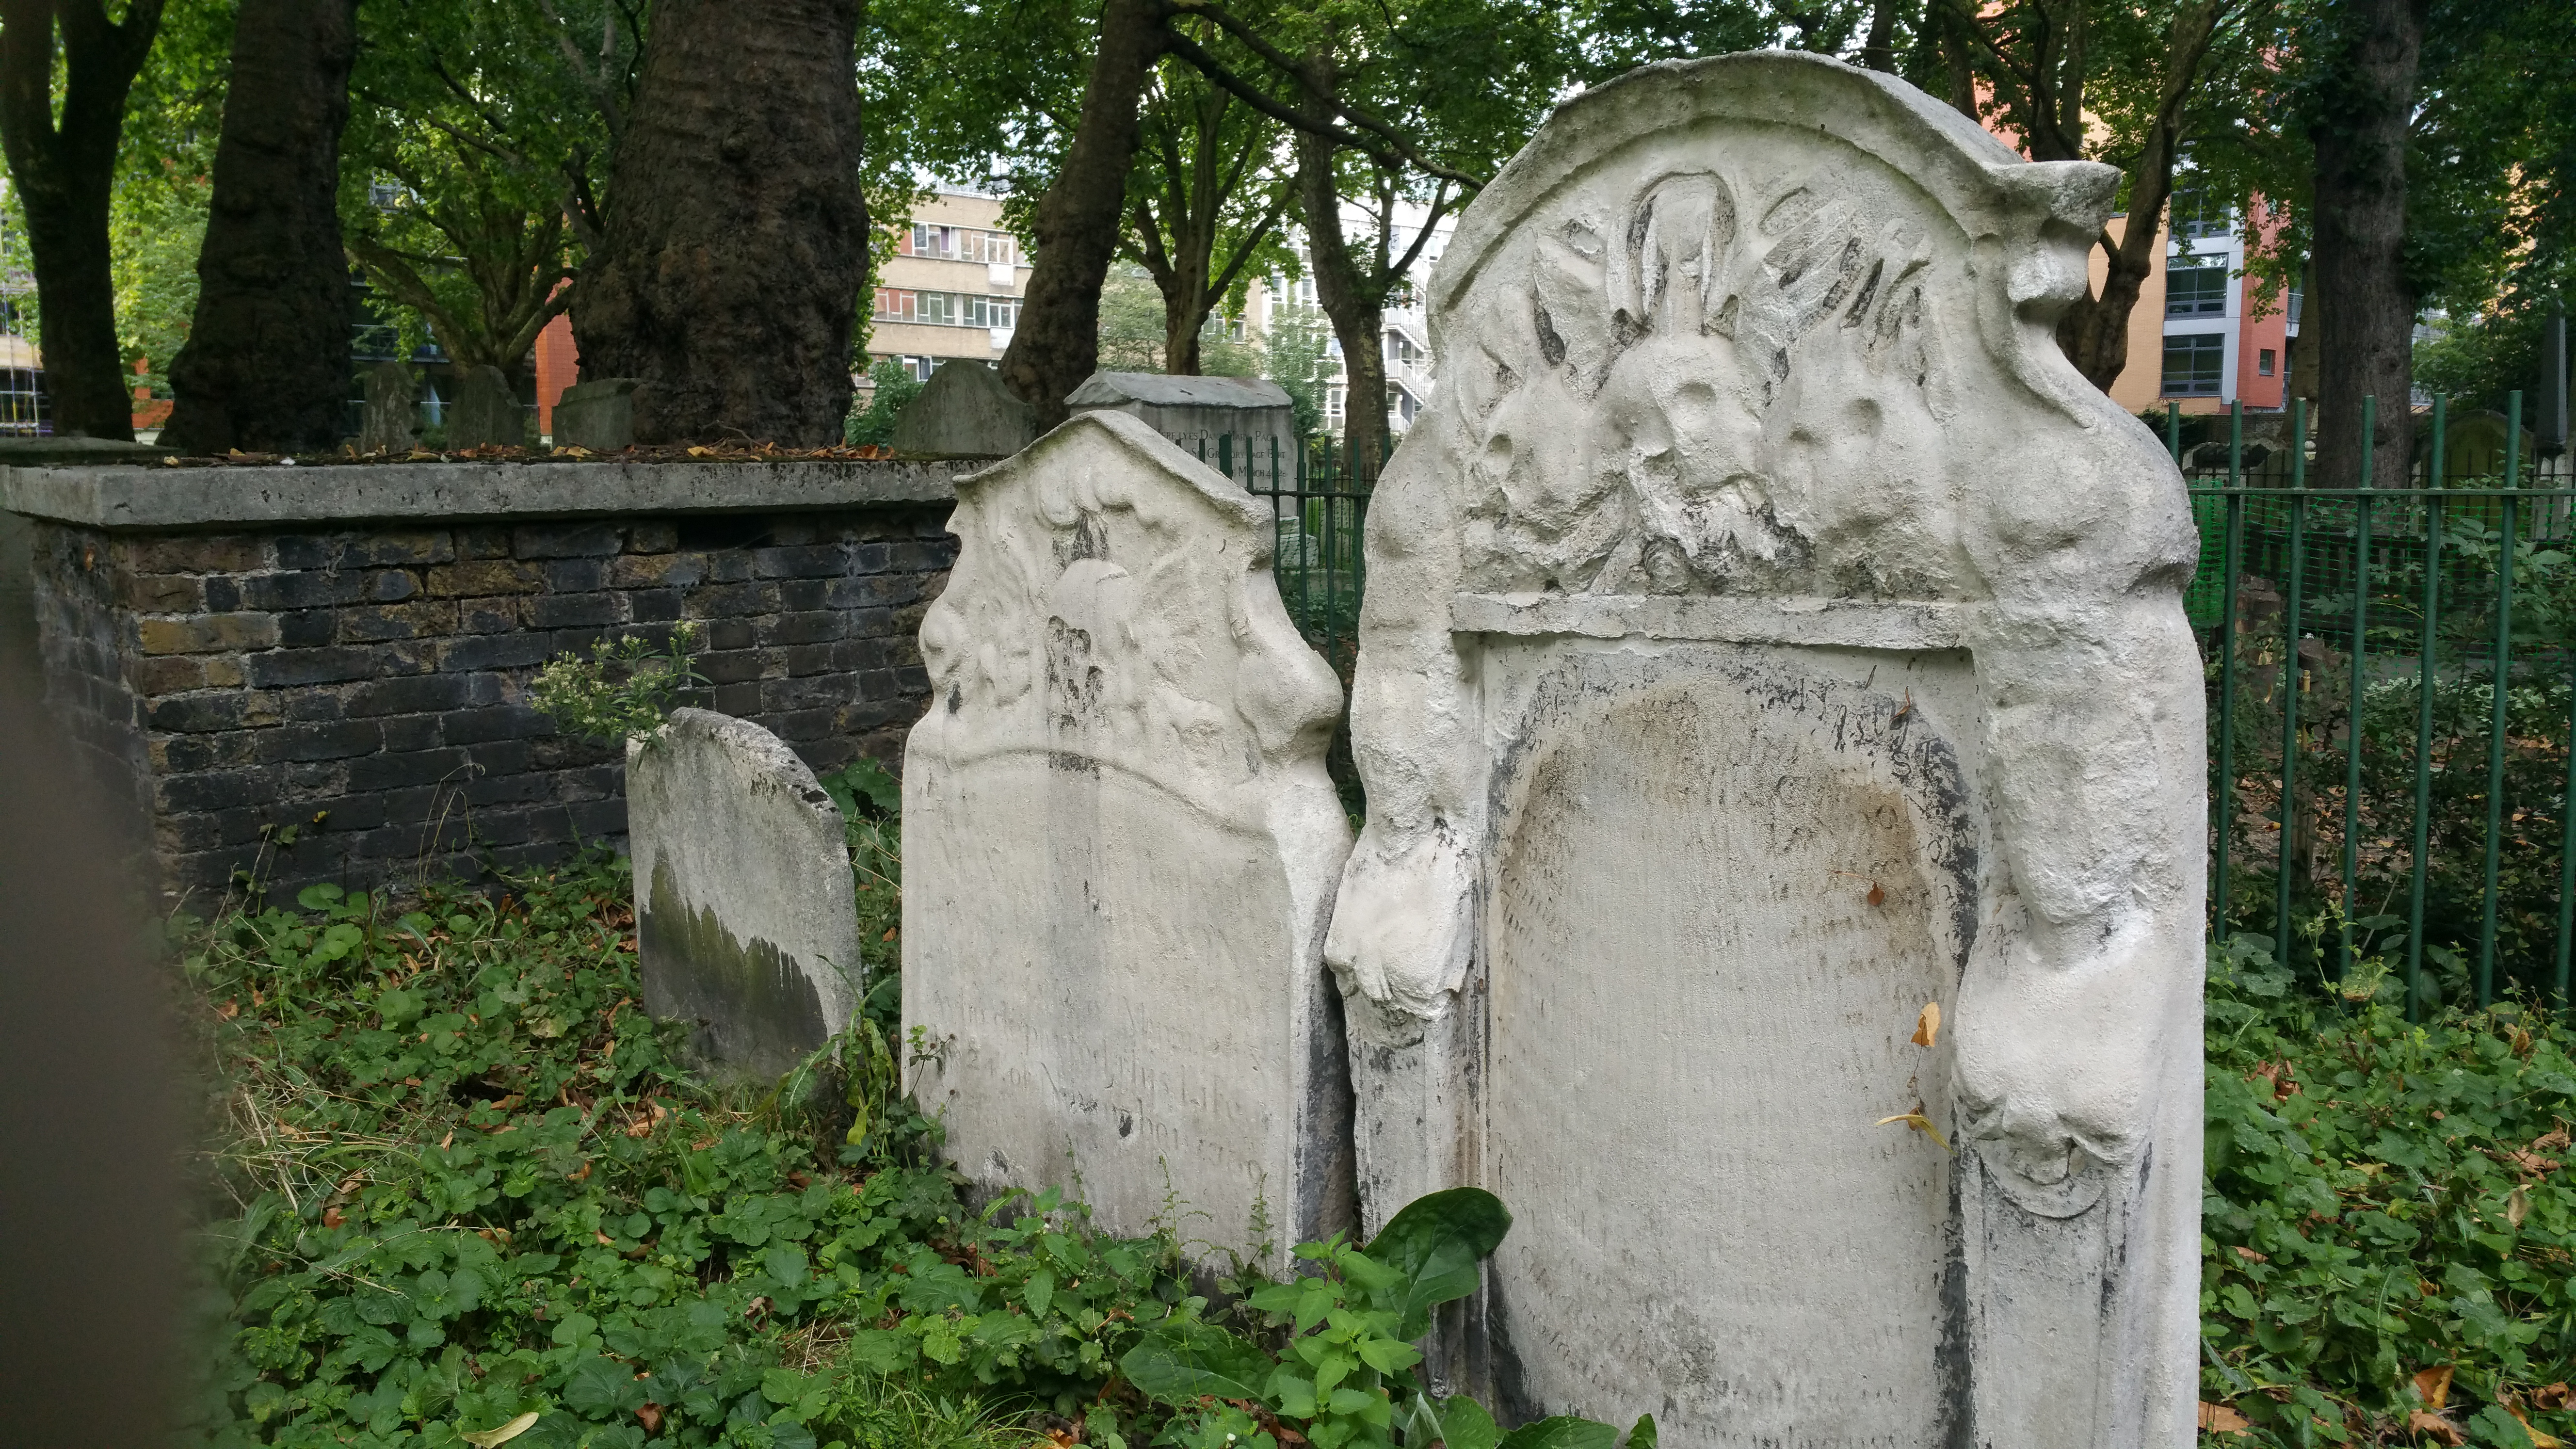 London's Dead and Buried – Dealing with its deceased citizens